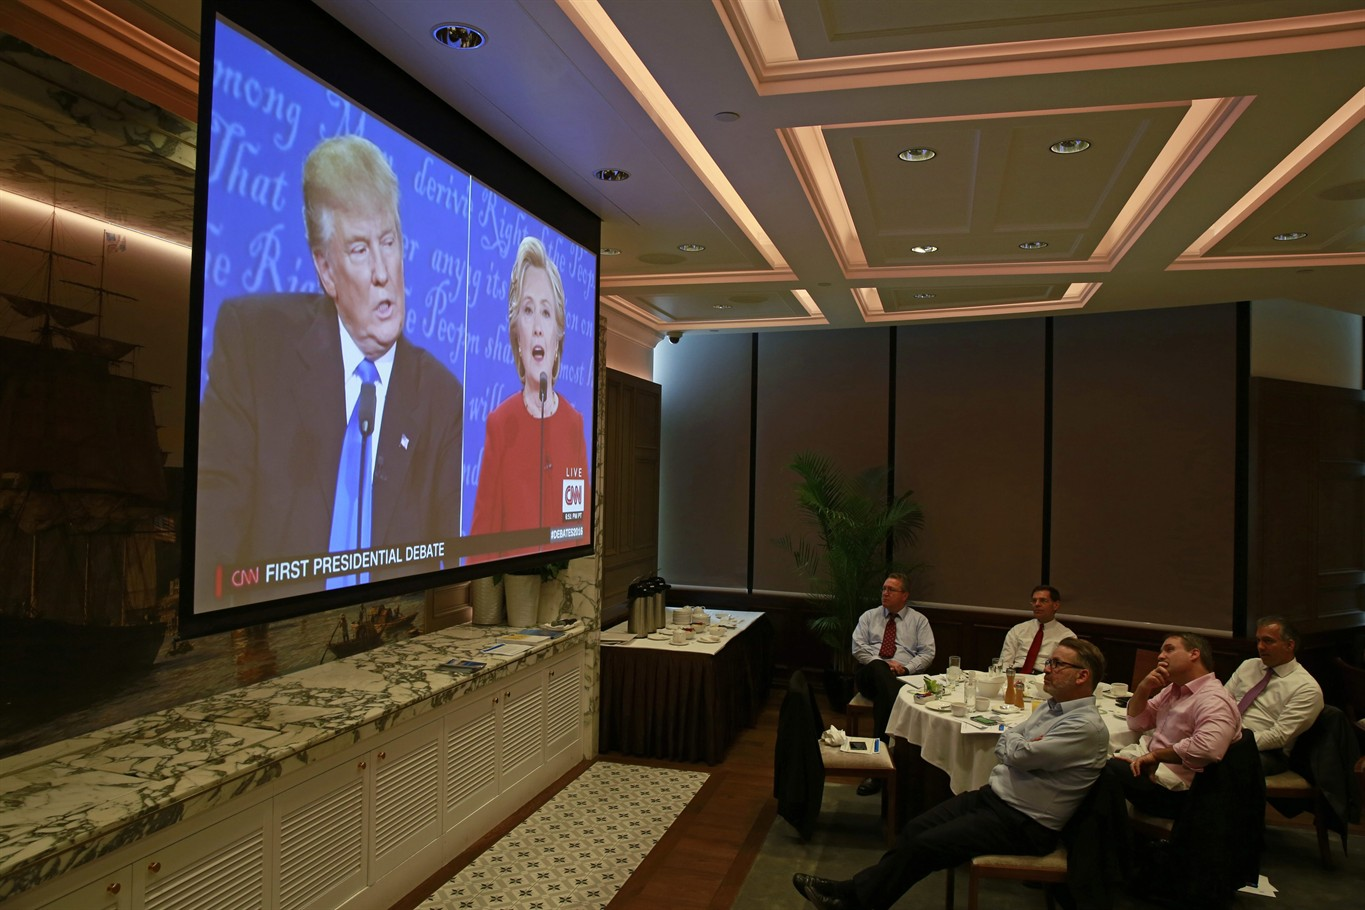 People watch live broadcasting of the U.S. presidential debate between Democratic presidential nominee Hillary Clinton and Republican presidential nominee Donald Trump, at the American Club Hong Kong, Tuesday, Sept. 27, 2016 | AP Photo/Kin Cheung, St. George News